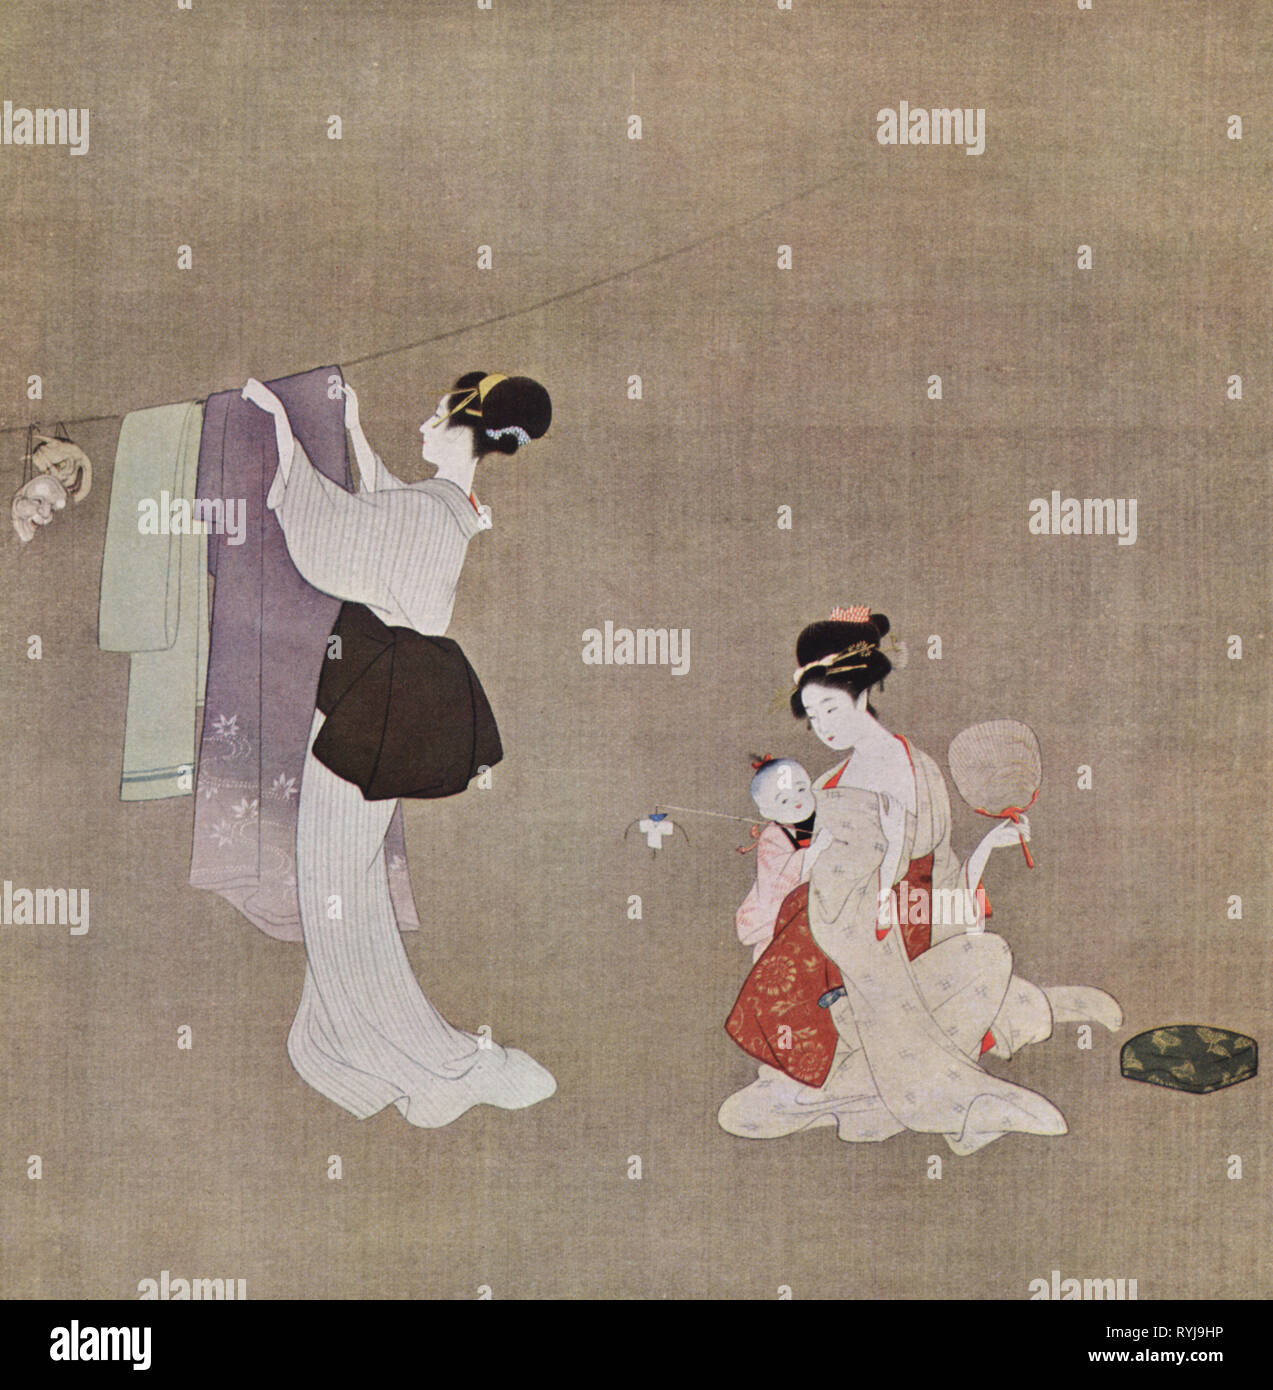 geography / travel historic, Japan, people, two women with child, domestic scene, airing dresses, print after silk painting by Uemura Shoen, 1st half 20th century, clothesline, clotheslines, fan, fans, household, households, everyday life, daily routine, painting, fine arts, art, Bijin-ga, Bijinga, ukiyo-e, female, clothes, fashion, child, children, kid, kids, scene, scenes, dress, dresses, print, printings, historic, historical, half length, half-length, Artist's Copyright has not to be cleared - Stock Image